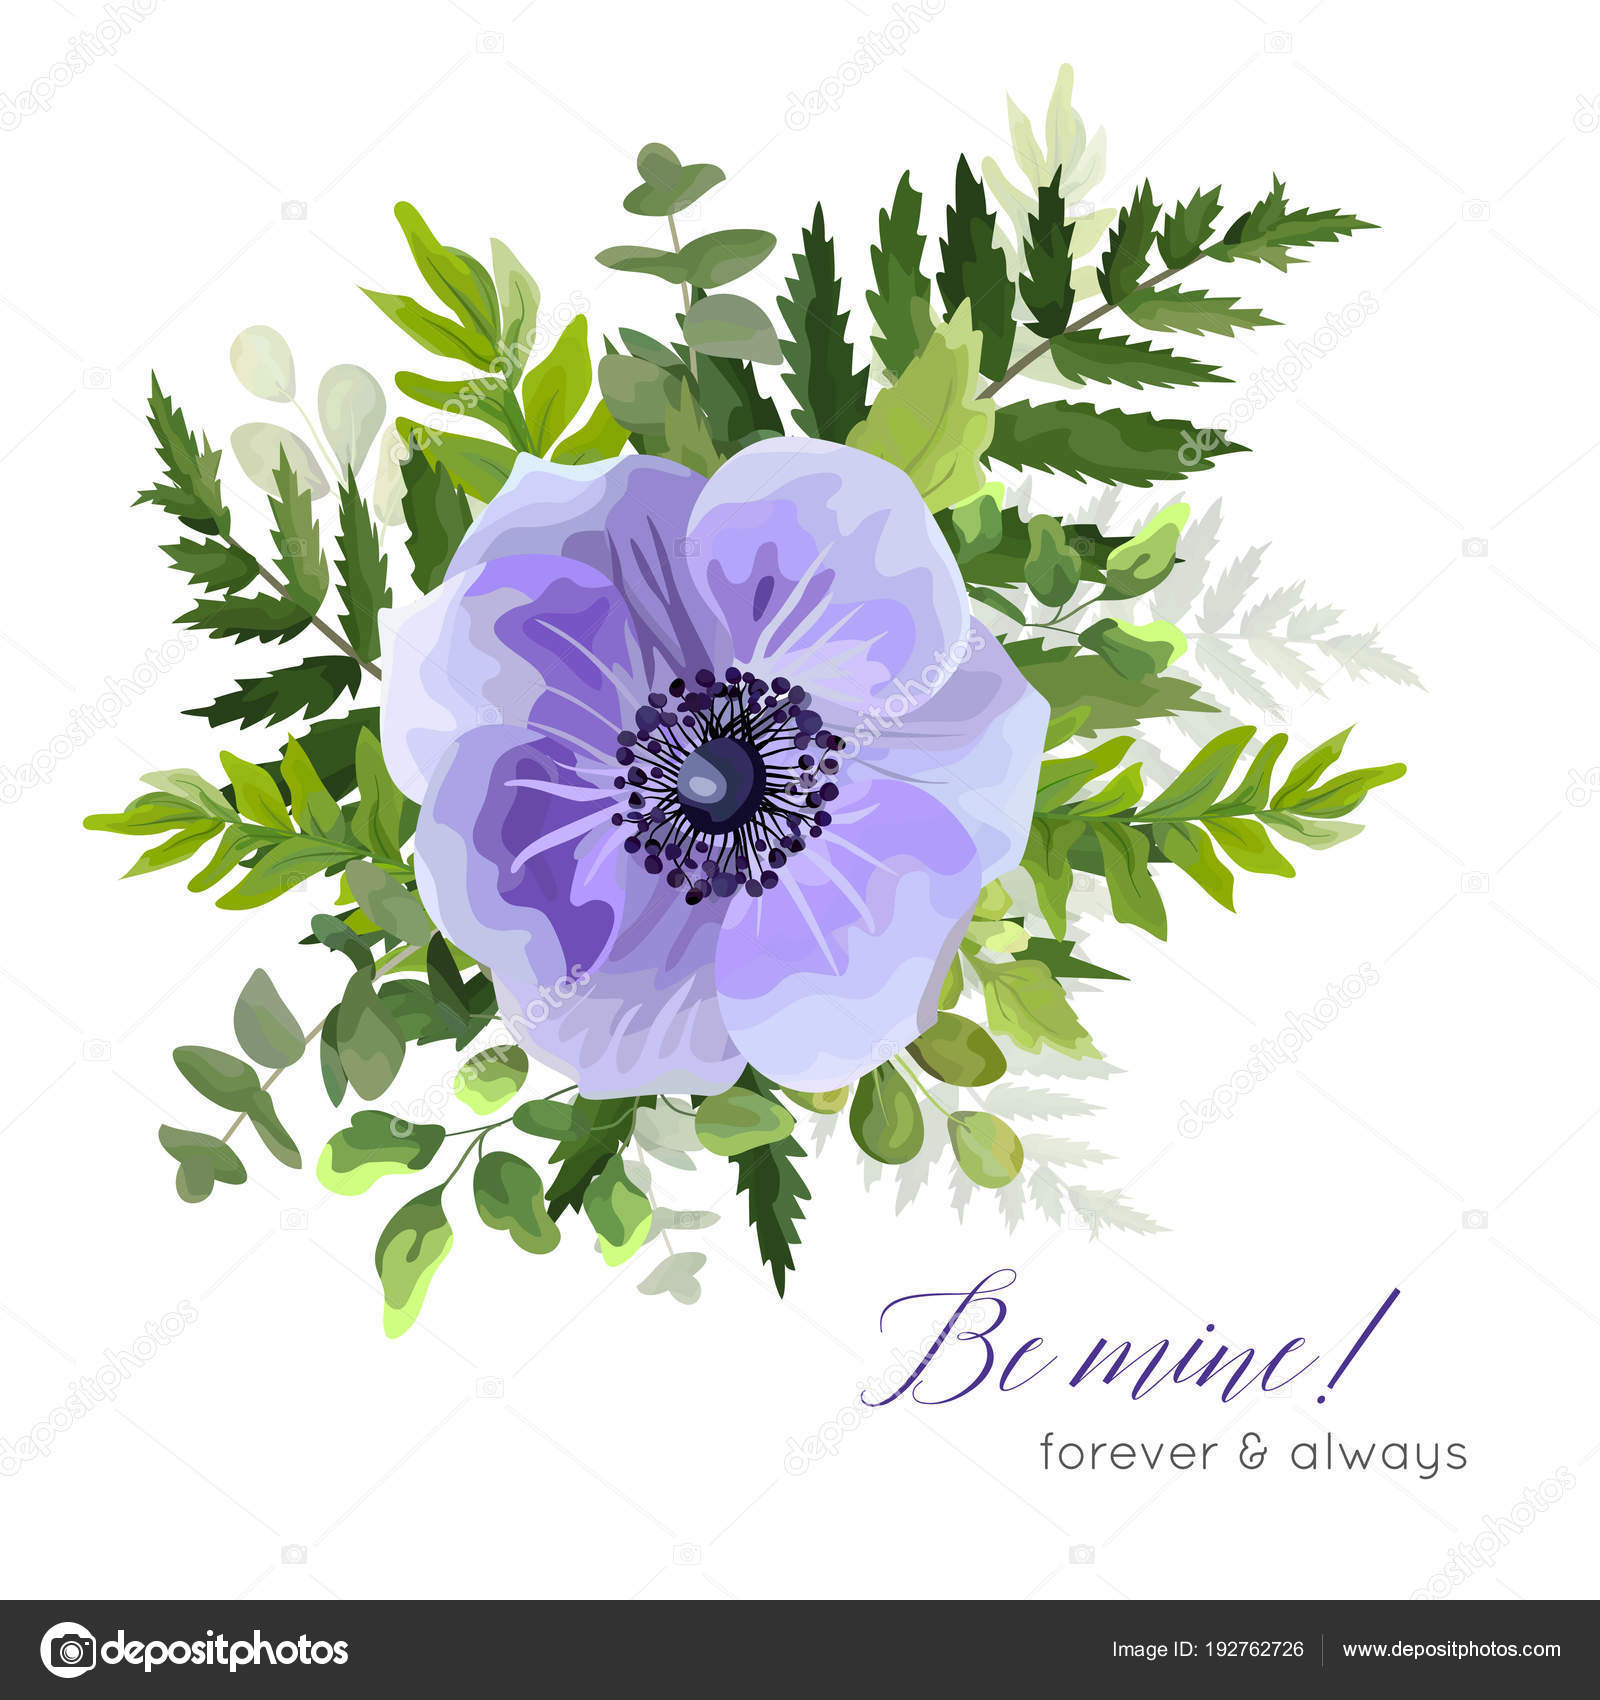 Vector Floral Elegant Botanical Card Design With Ultra Violet Blue Purple Garden Anemone Poppy Flowers Greenery Forest Ferns Green Leaves Cute Bouquet Beautiful Invite Postcard Greeting Template Stock Vector C Alewiena 192762726